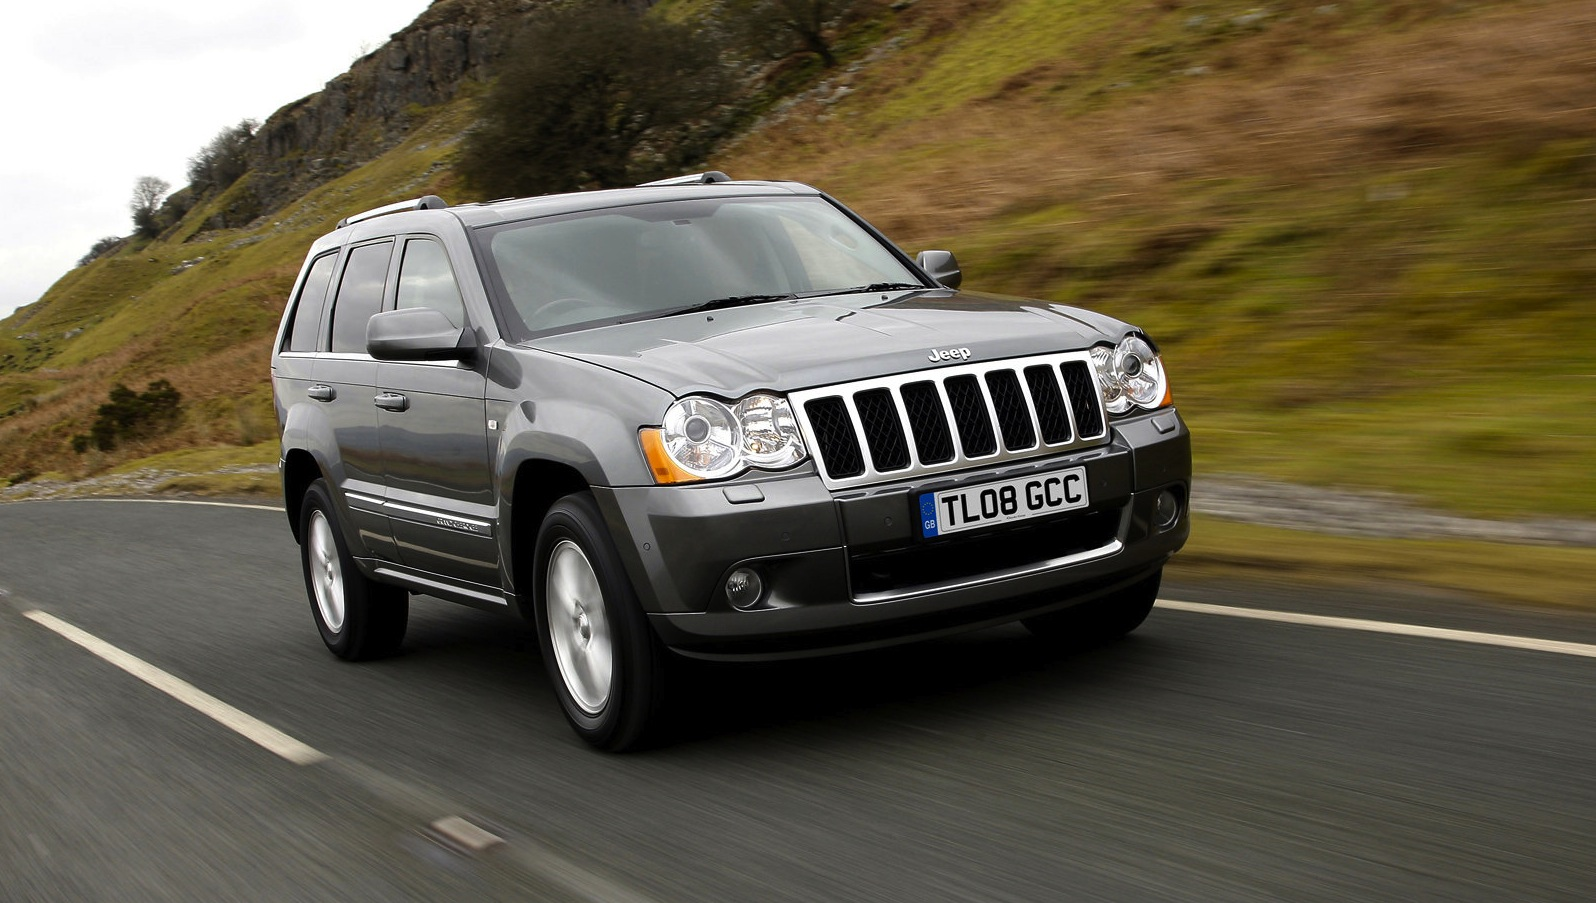 jeep grand cherokee commander 5000 cars recalled locally photos 1 of 5. Black Bedroom Furniture Sets. Home Design Ideas